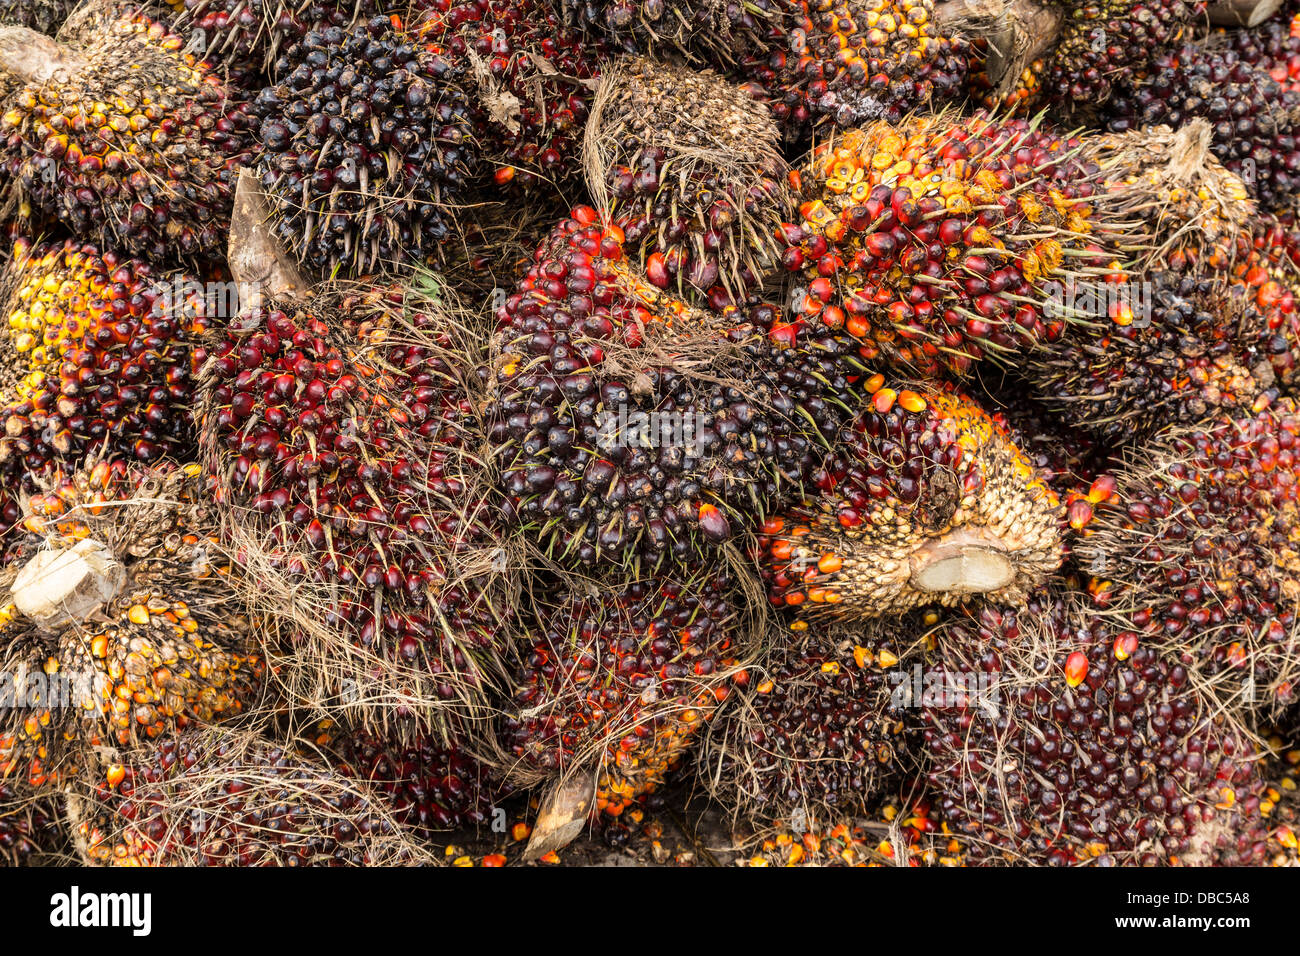 Oil palm fruits before processing in Thailand - Stock Image